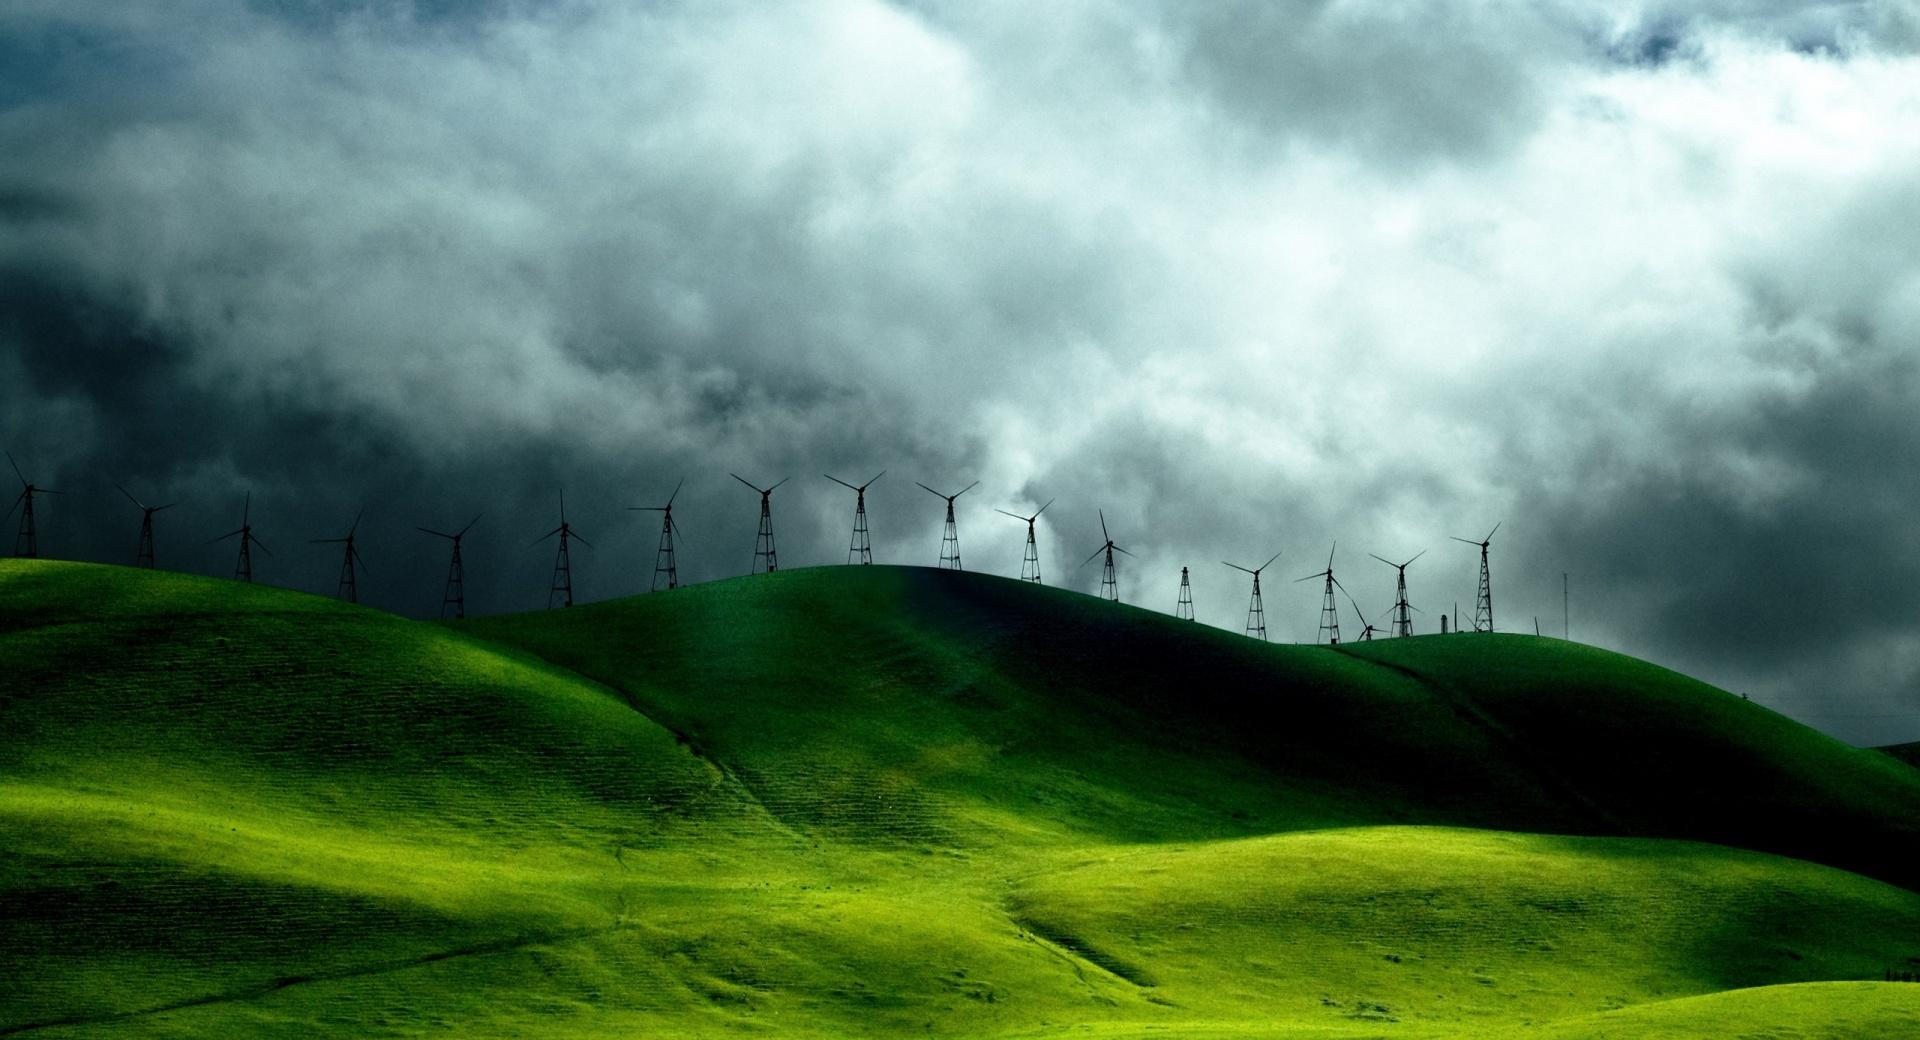 Turbines For Clean Energy wallpapers HD quality